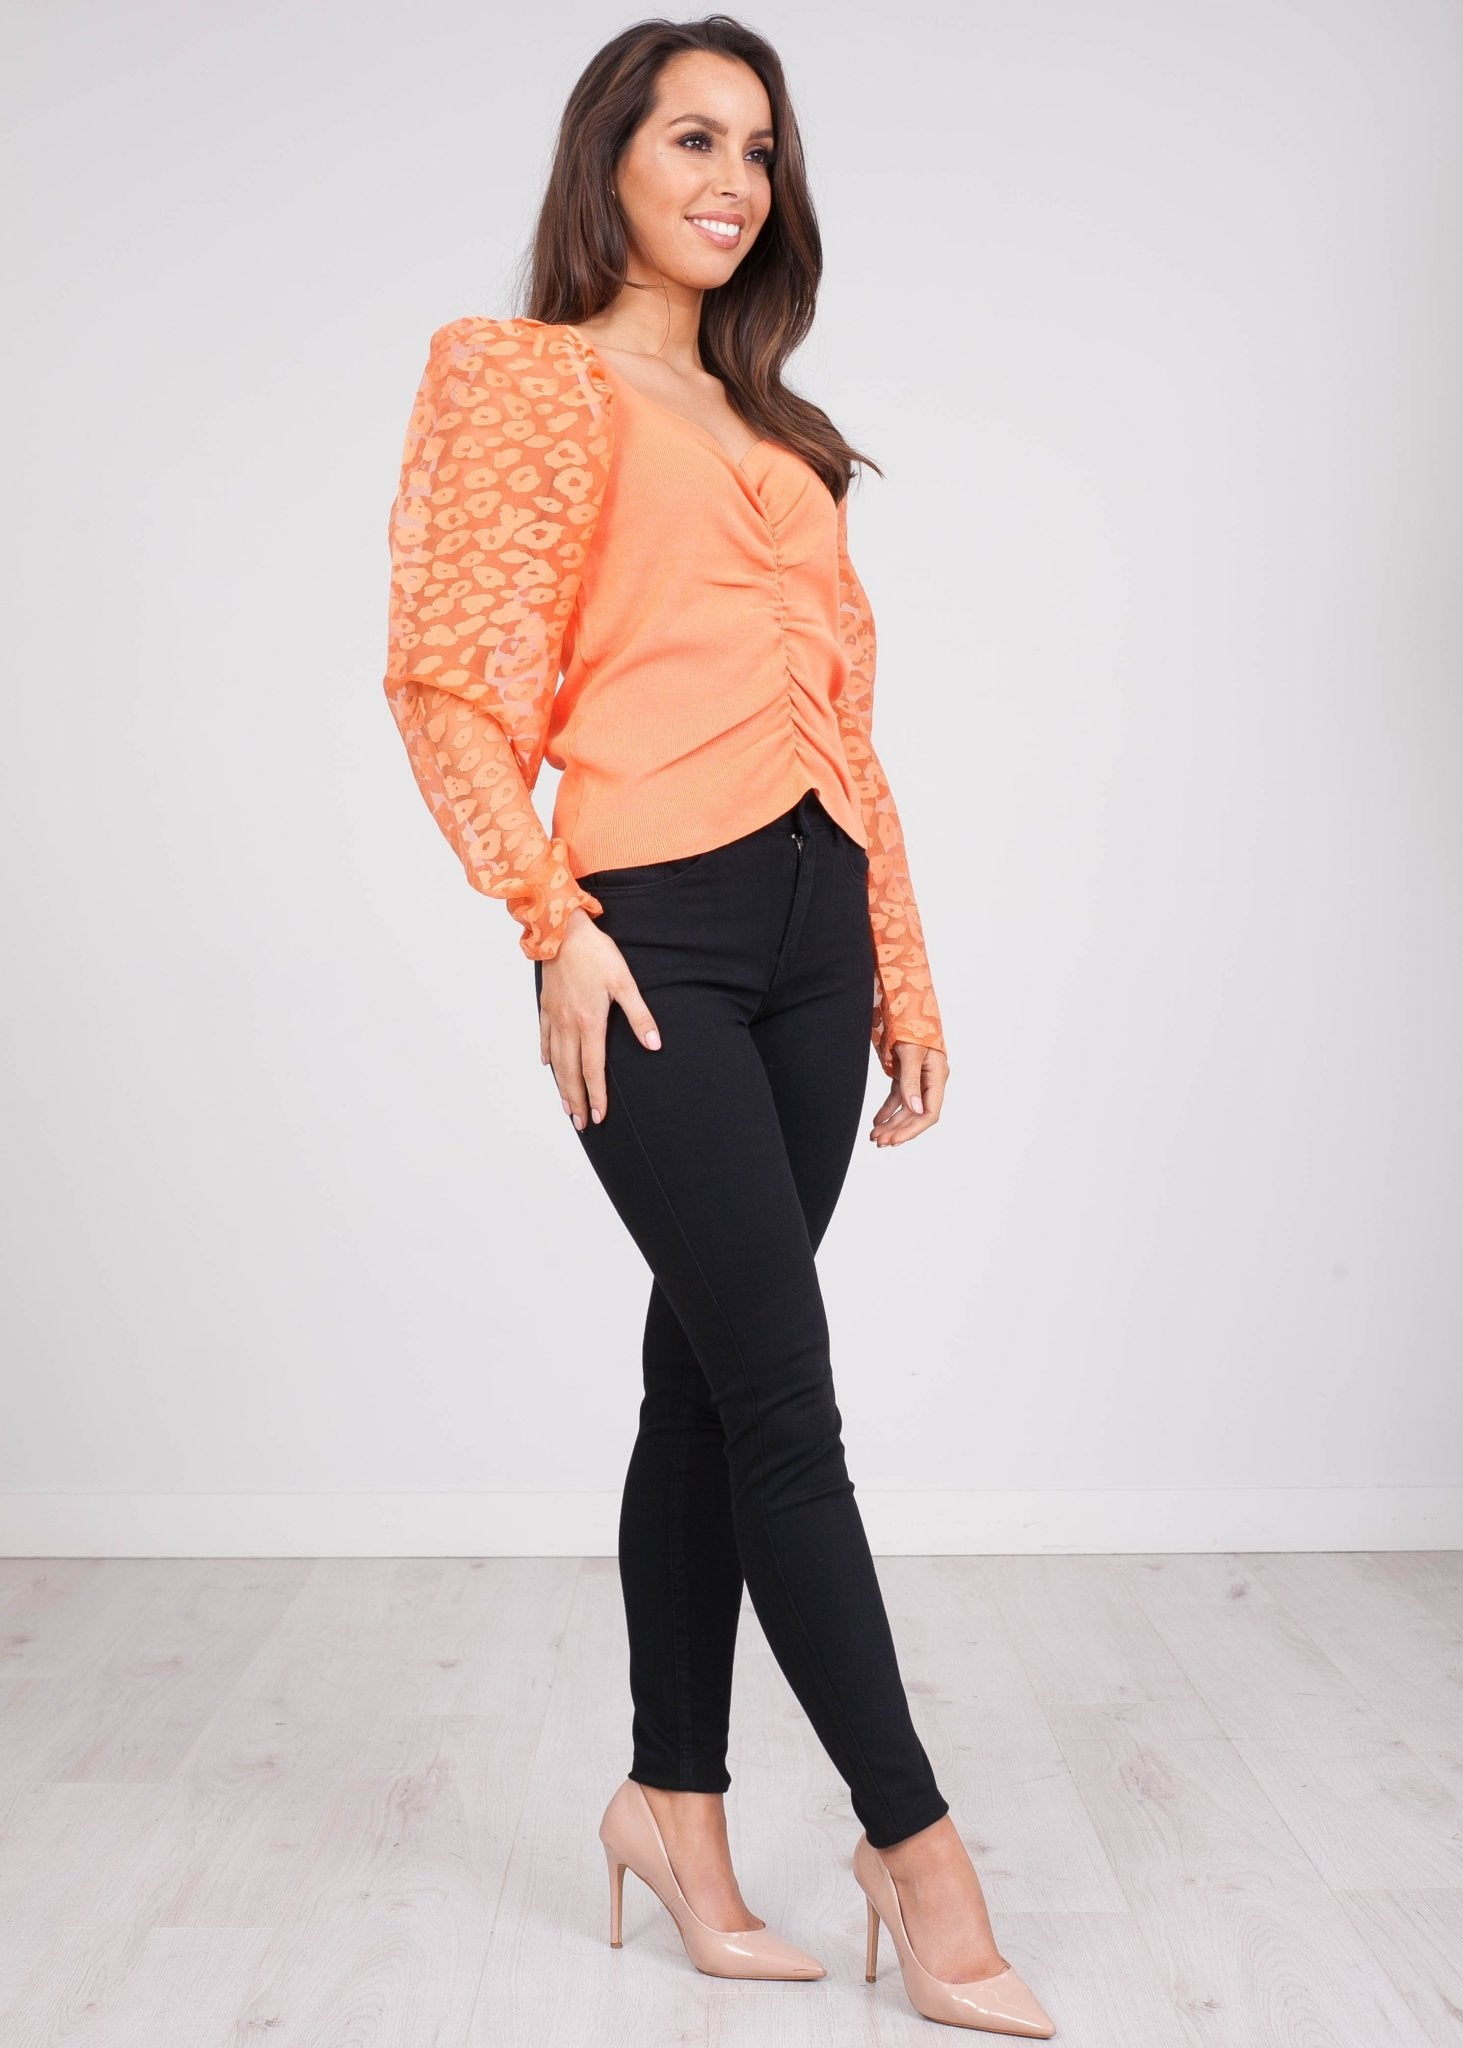 Cherie Orange Puff Sleeve Top - The Walk in Wardrobe